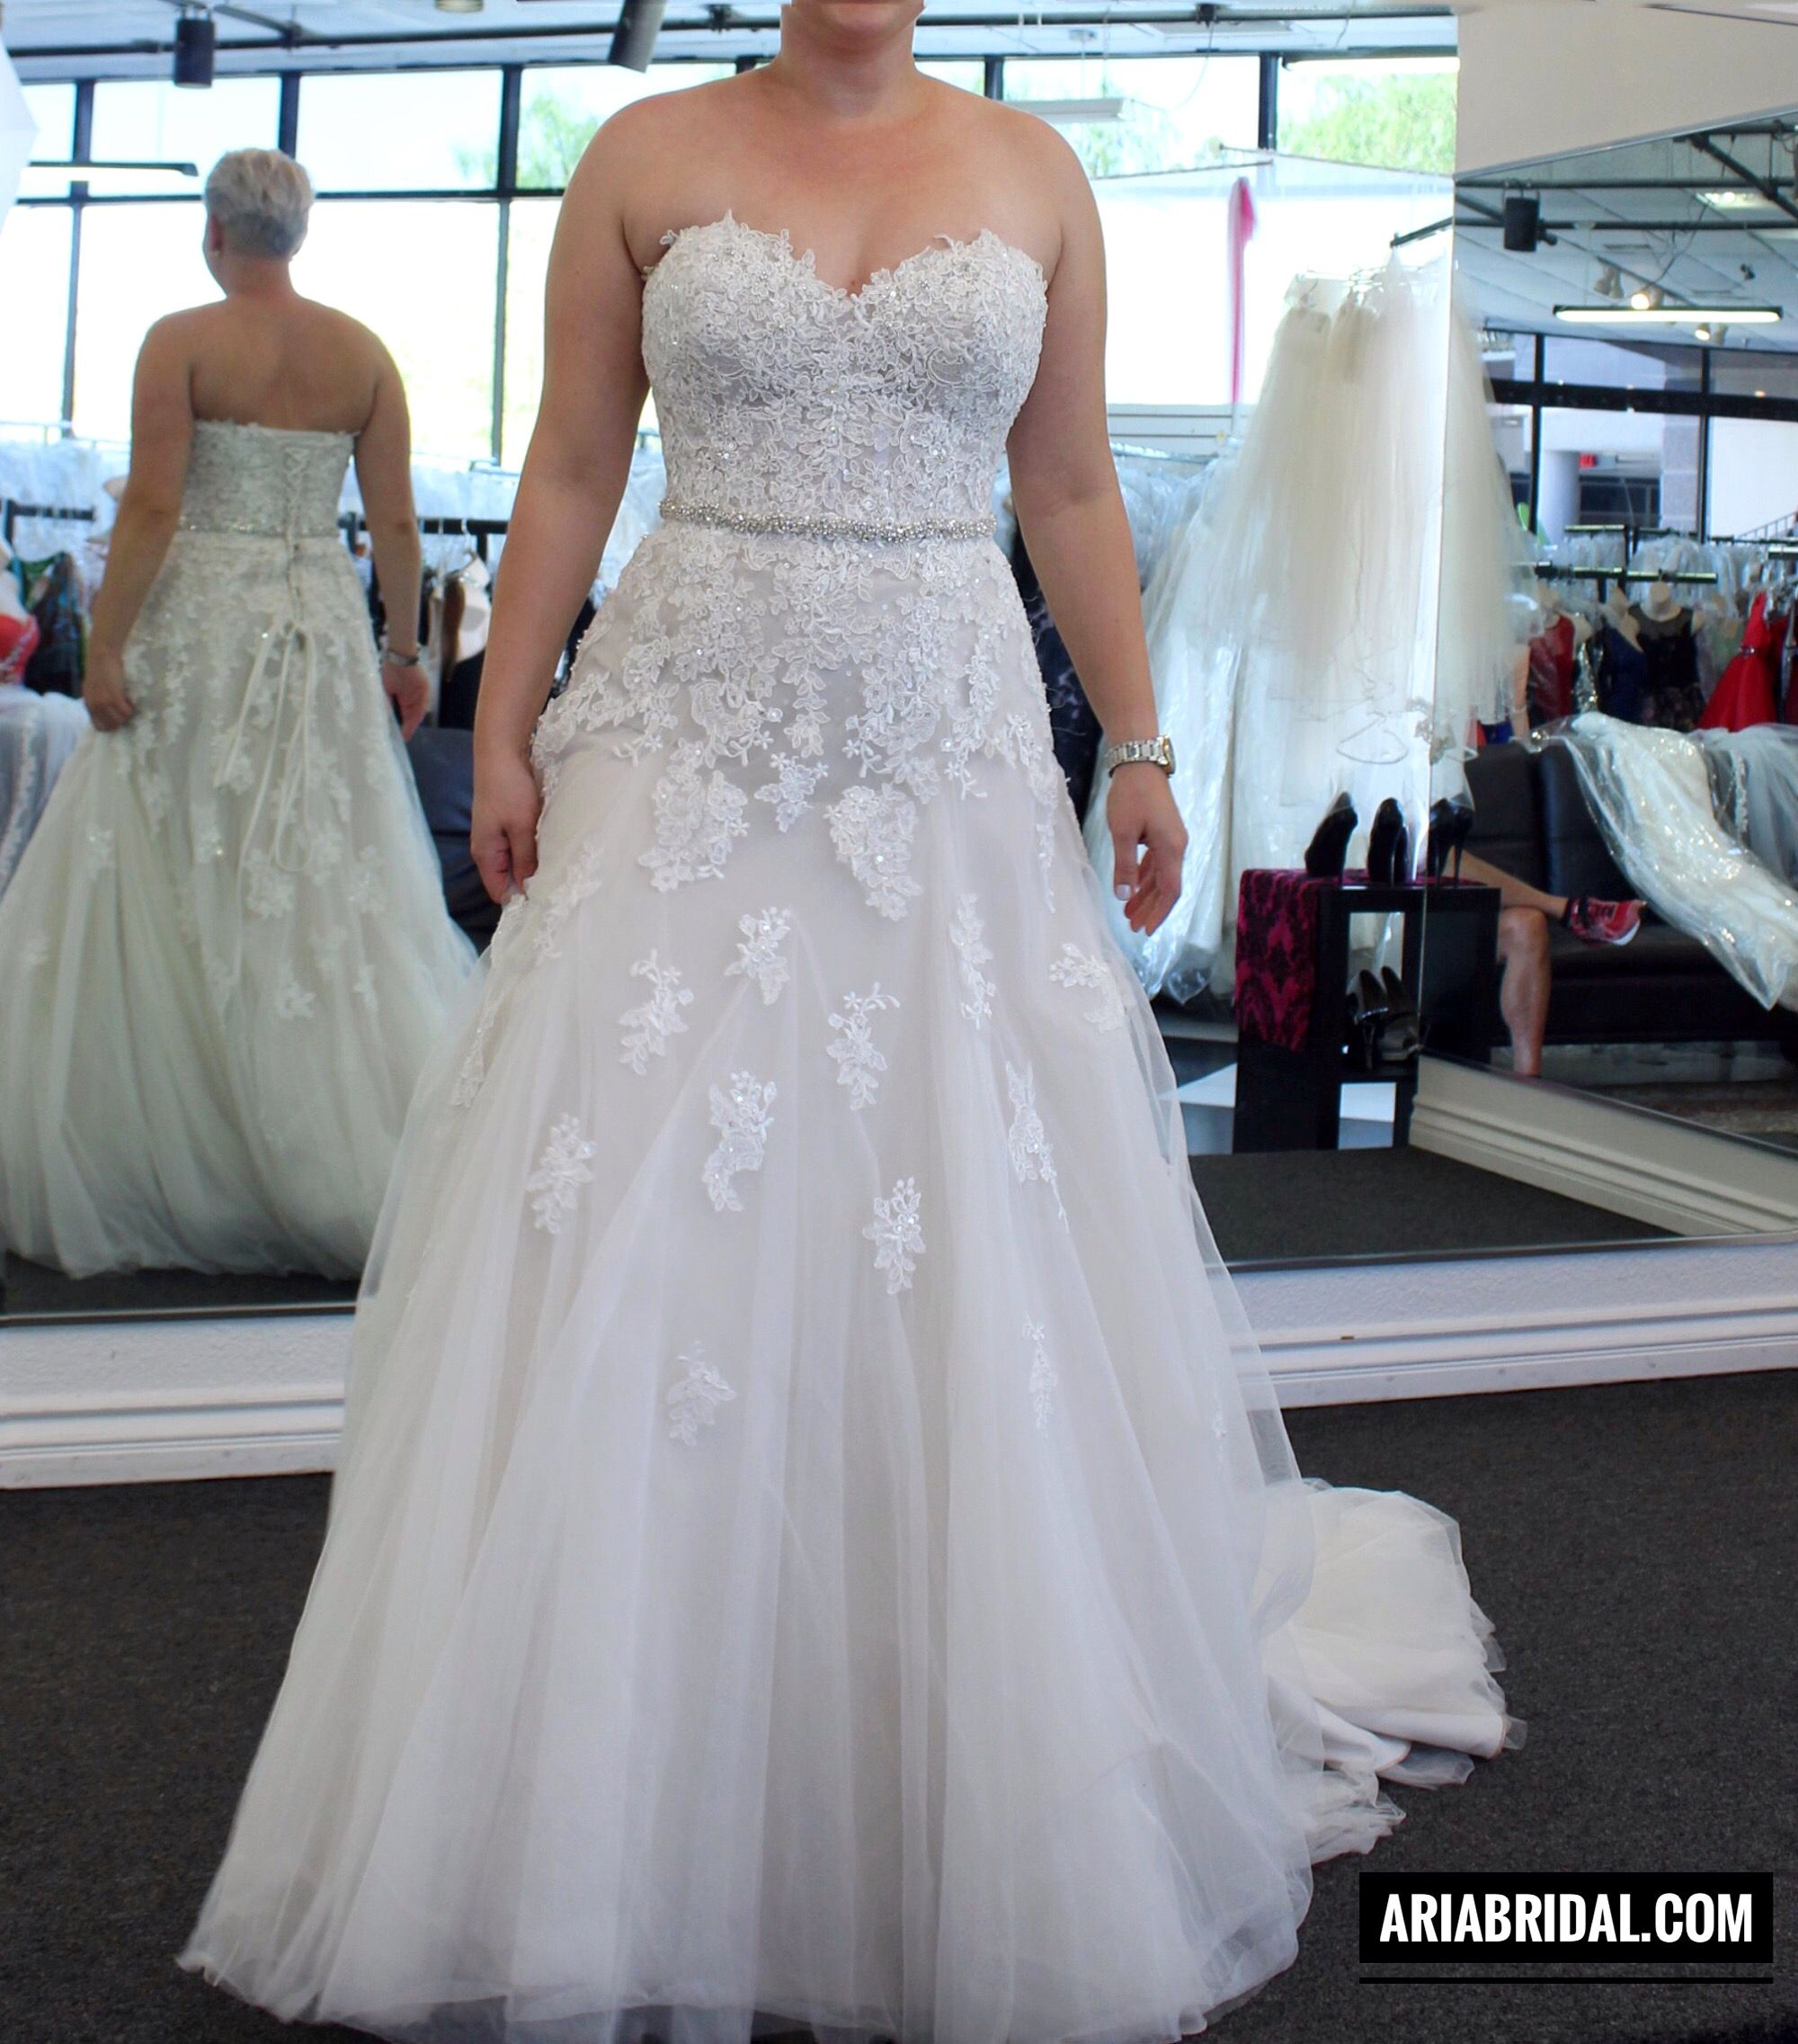 Bridal Gowns in California